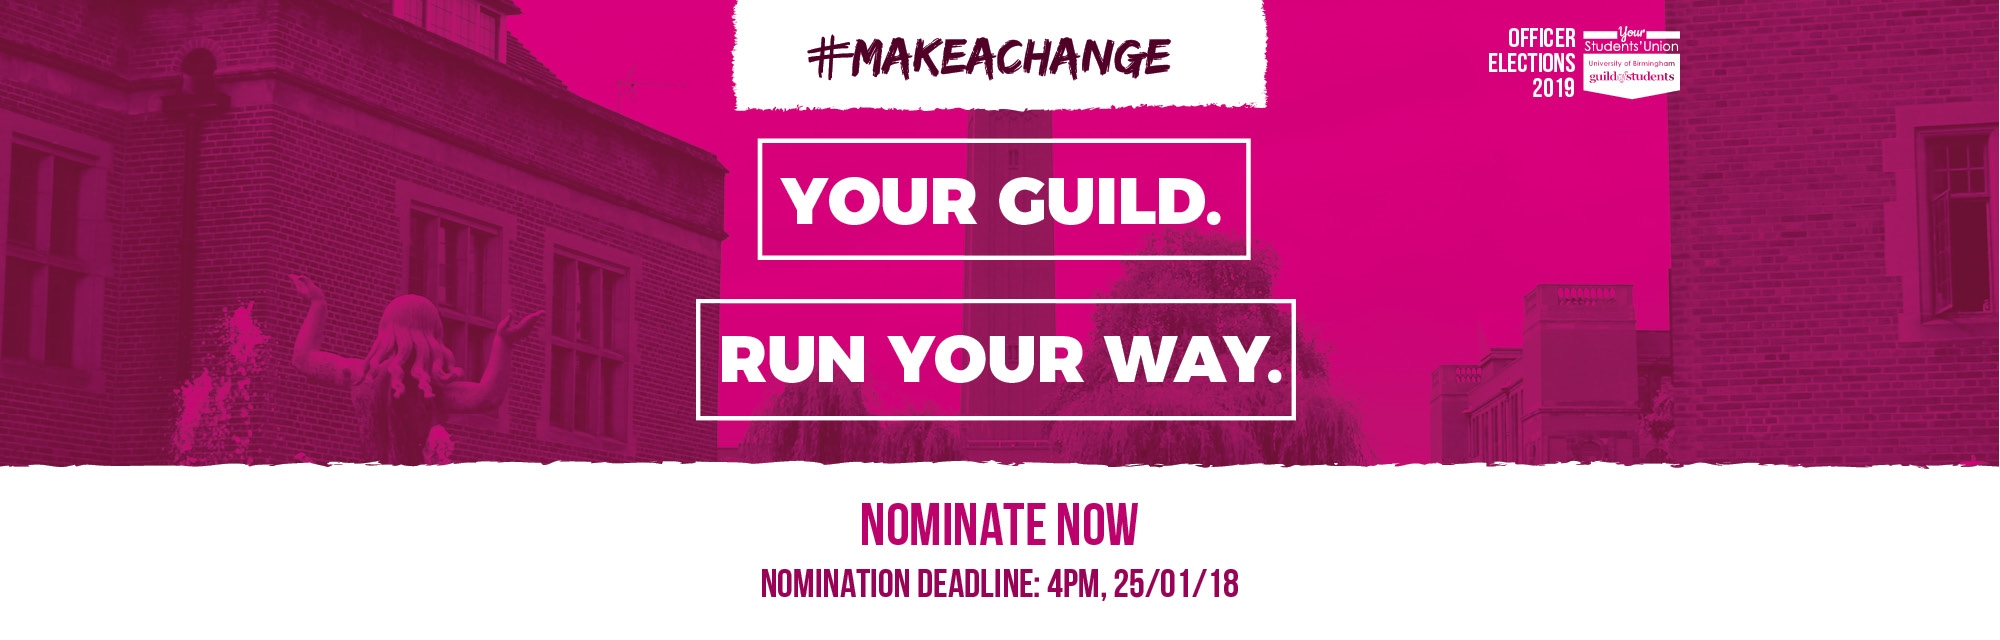 #makeachange - Your Guild Run Your Way - Nominate Now